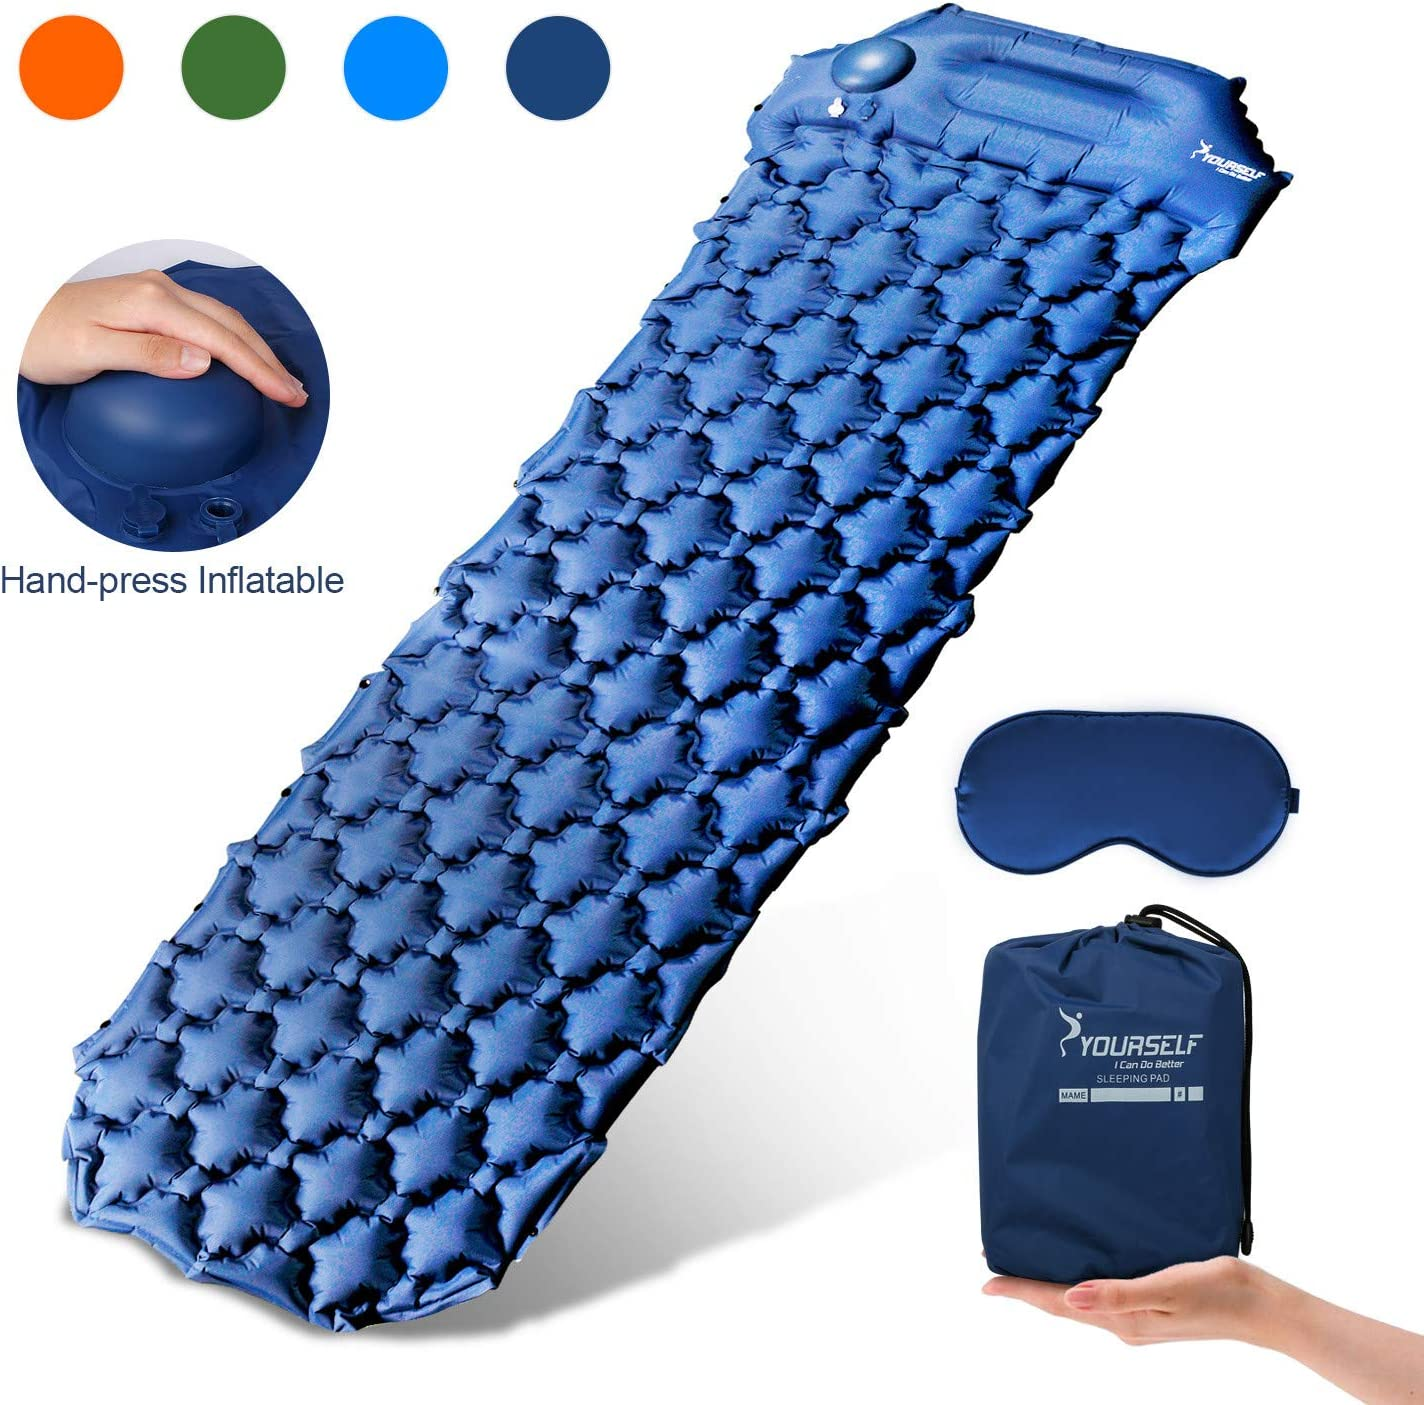 Ranking integrated 1st place SYOURSELF Max 74% OFF Camping Sleeping Pads for Inflatable